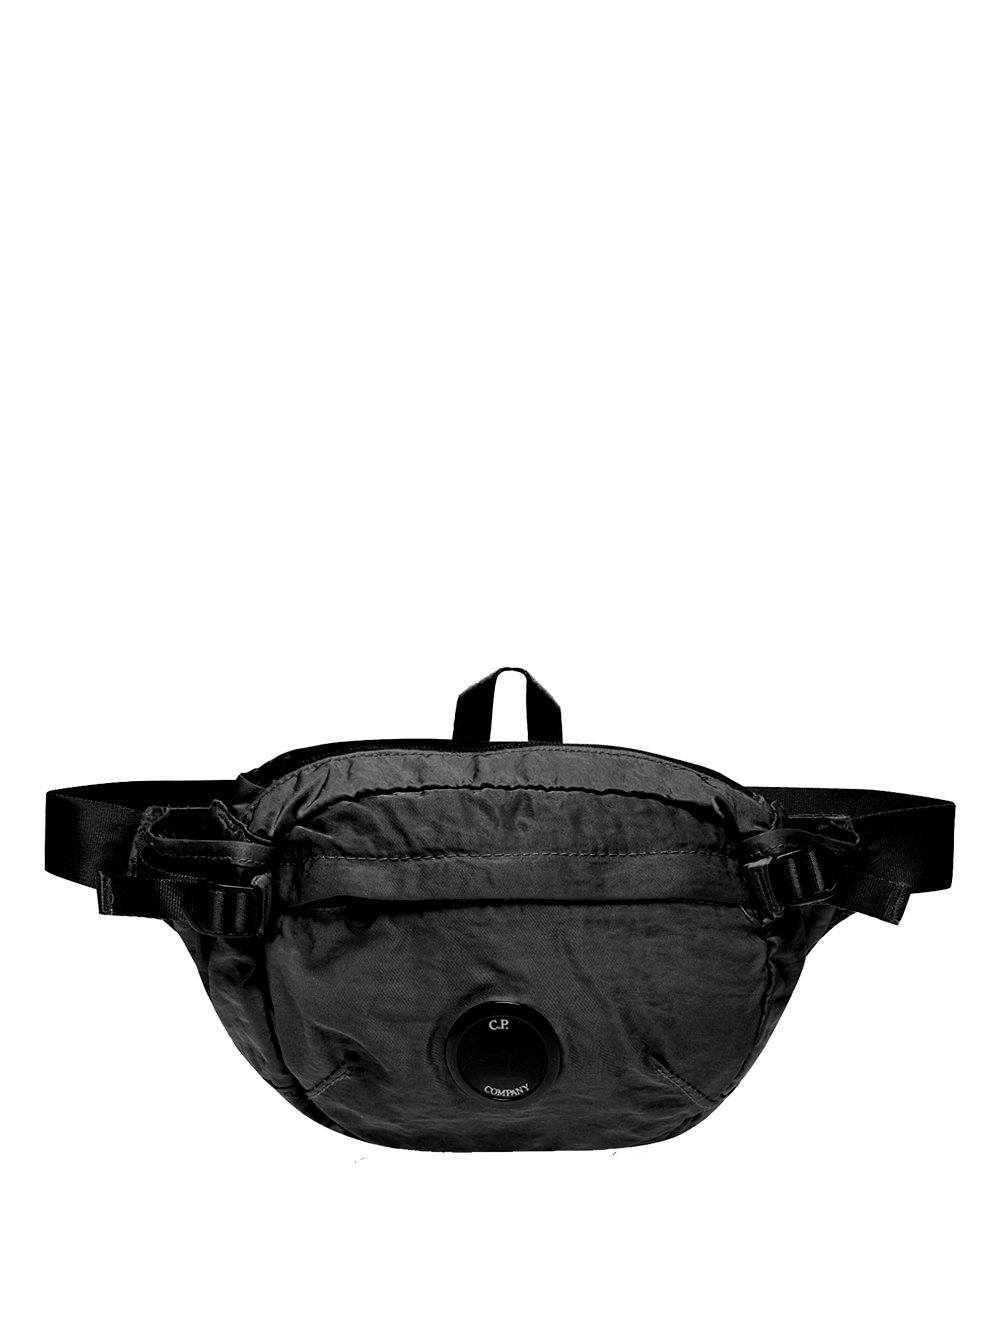 C.P. COMPANY lens belt bag black